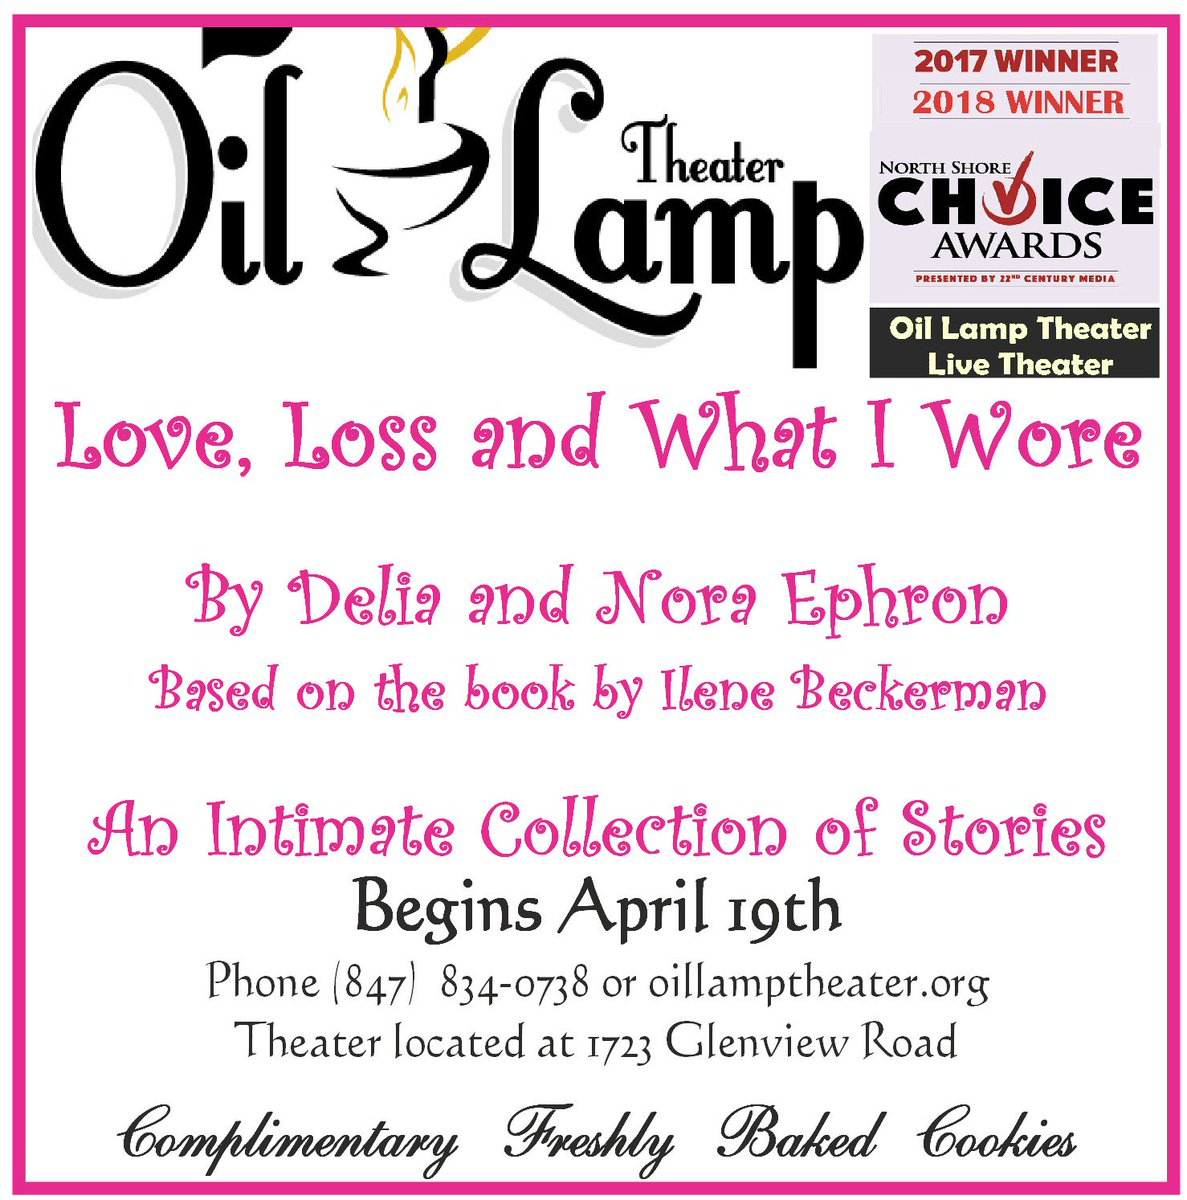 Great ... This Weekend Or Call Our Box Office To Buy Mom A Gift Certificate Good  For Any Oil Lamp Theater Show.  #perfectmothersdaygiftpic.twitter.com/i1j4JzHgCG